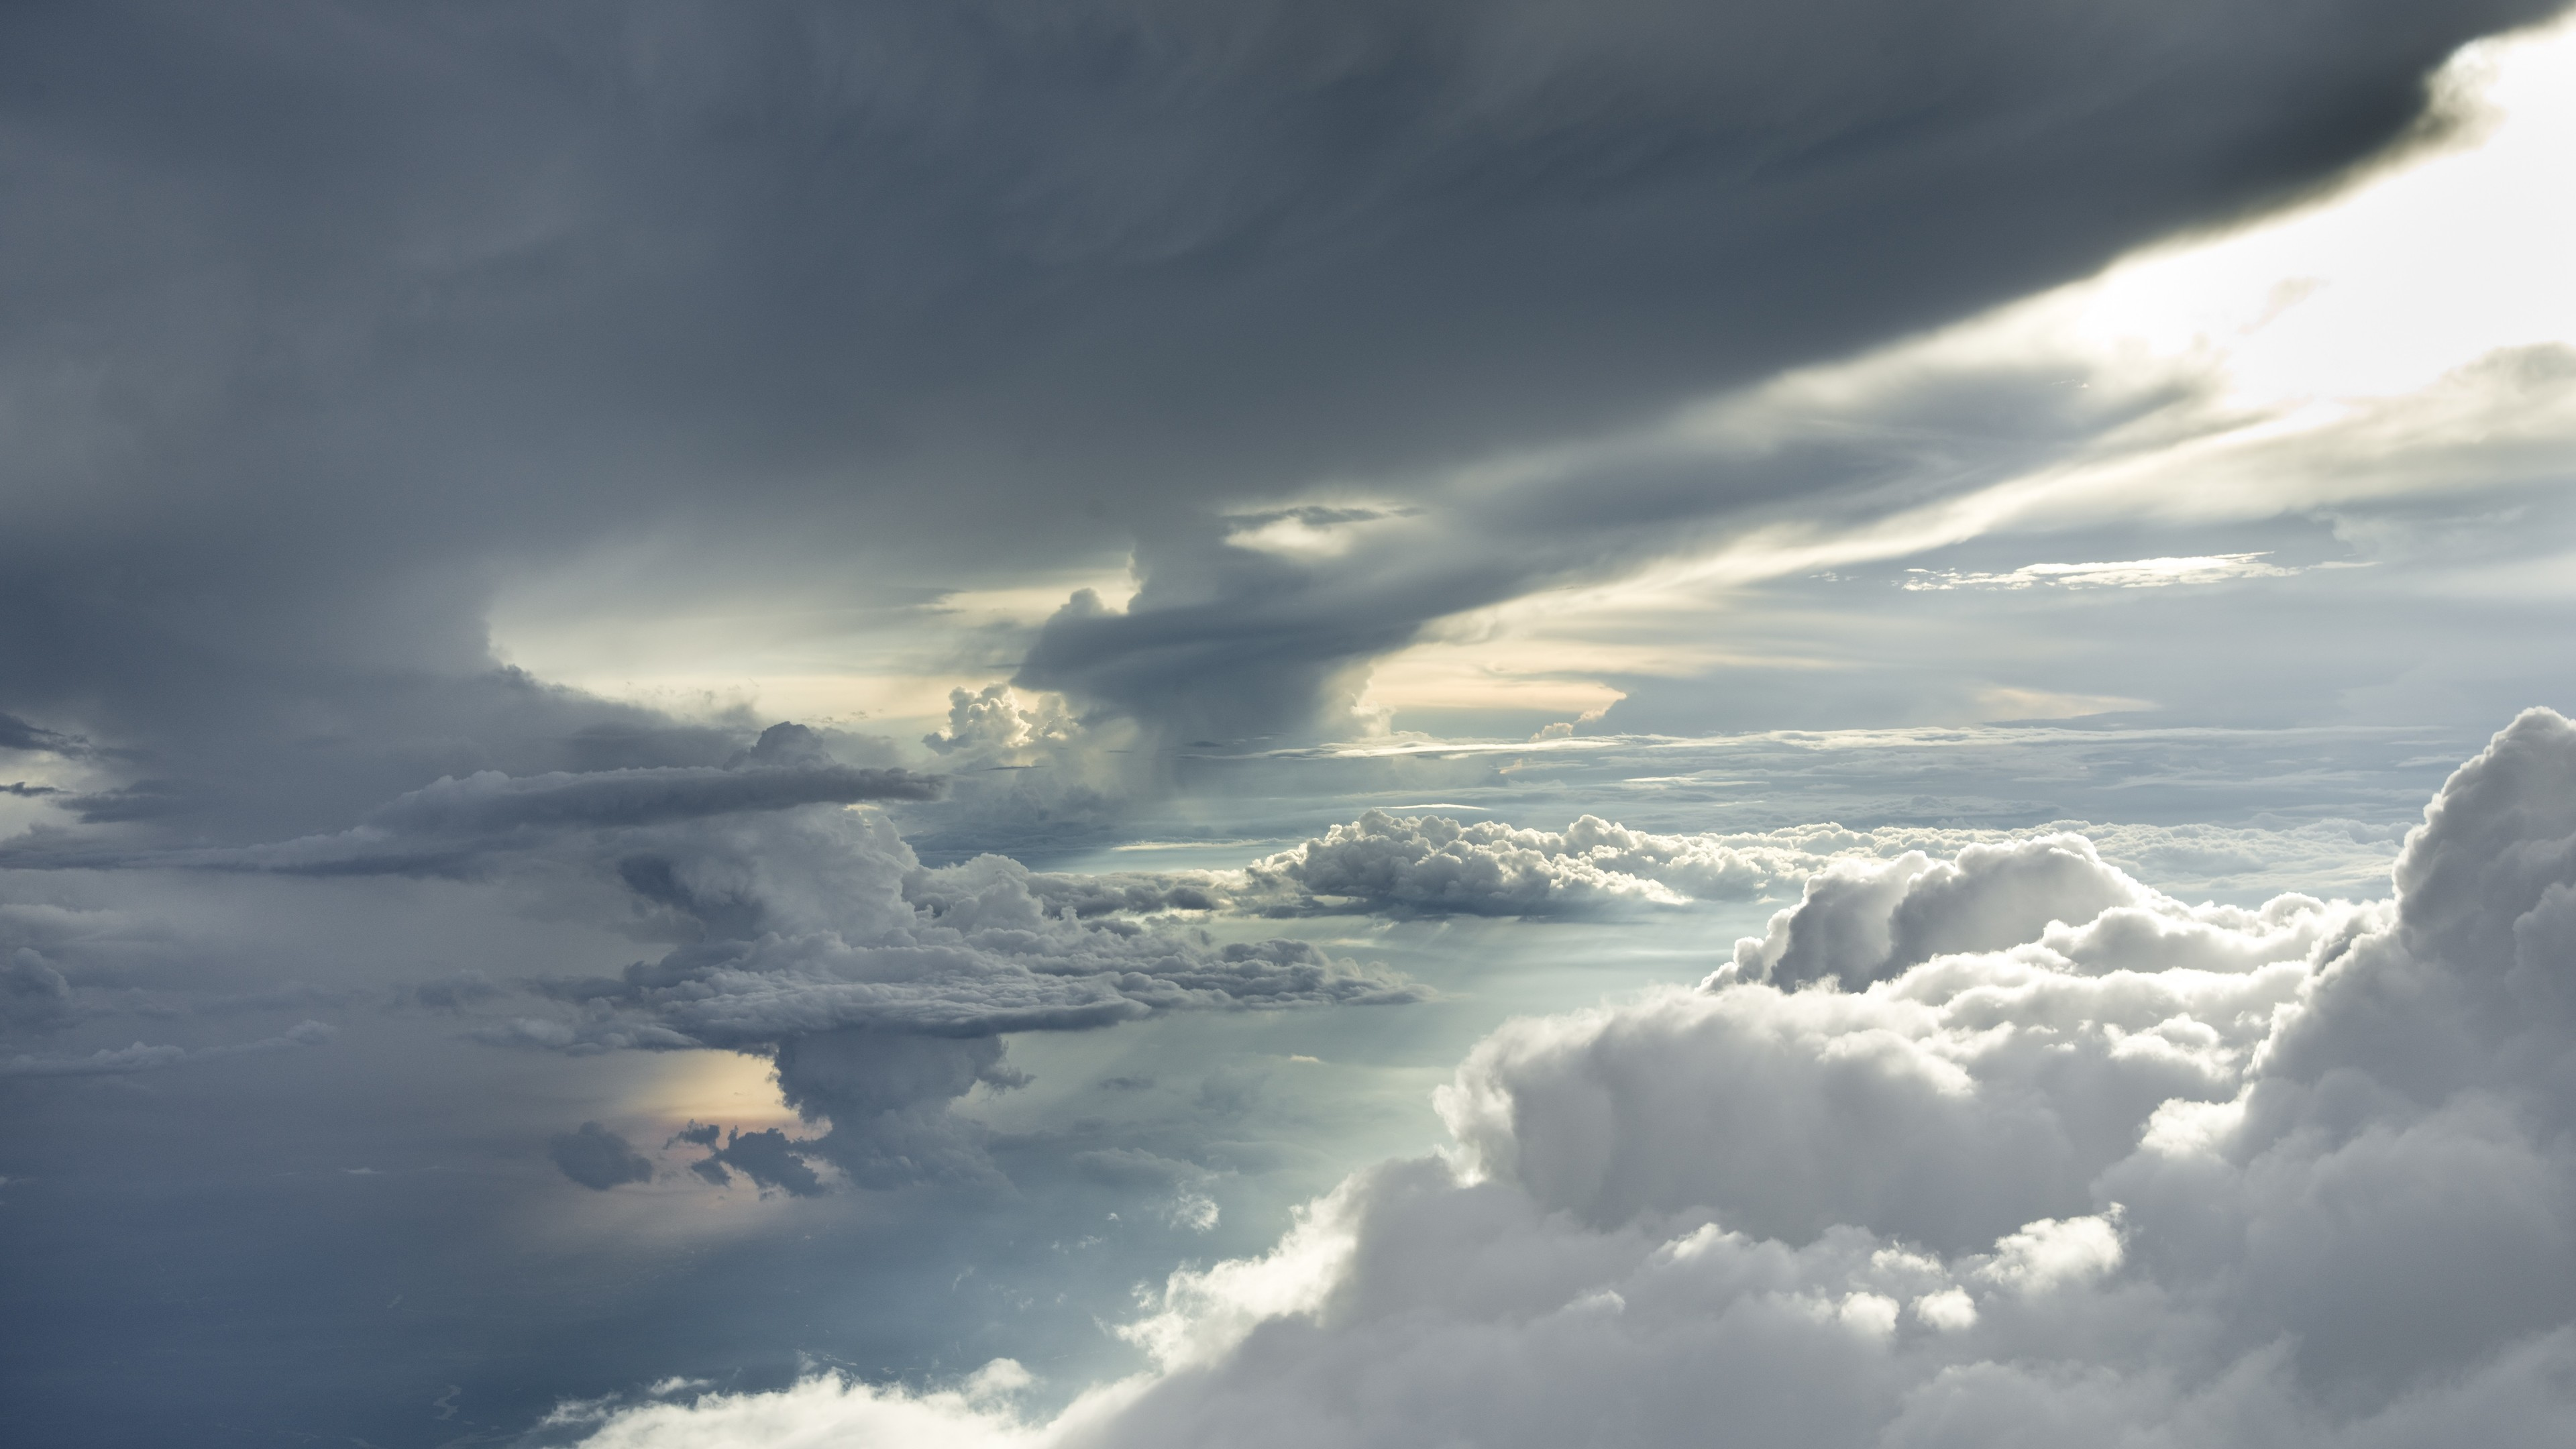 clouds sea sky sunlight photography 4k 1540139453 - Clouds Sea Sky Sunlight Photography 4k - sky wallpapers, sea of clouds wallpapers, photography wallpapers, hd-wallpapers, clouds wallpapers, 5k wallpapers, 4k-wallpapers